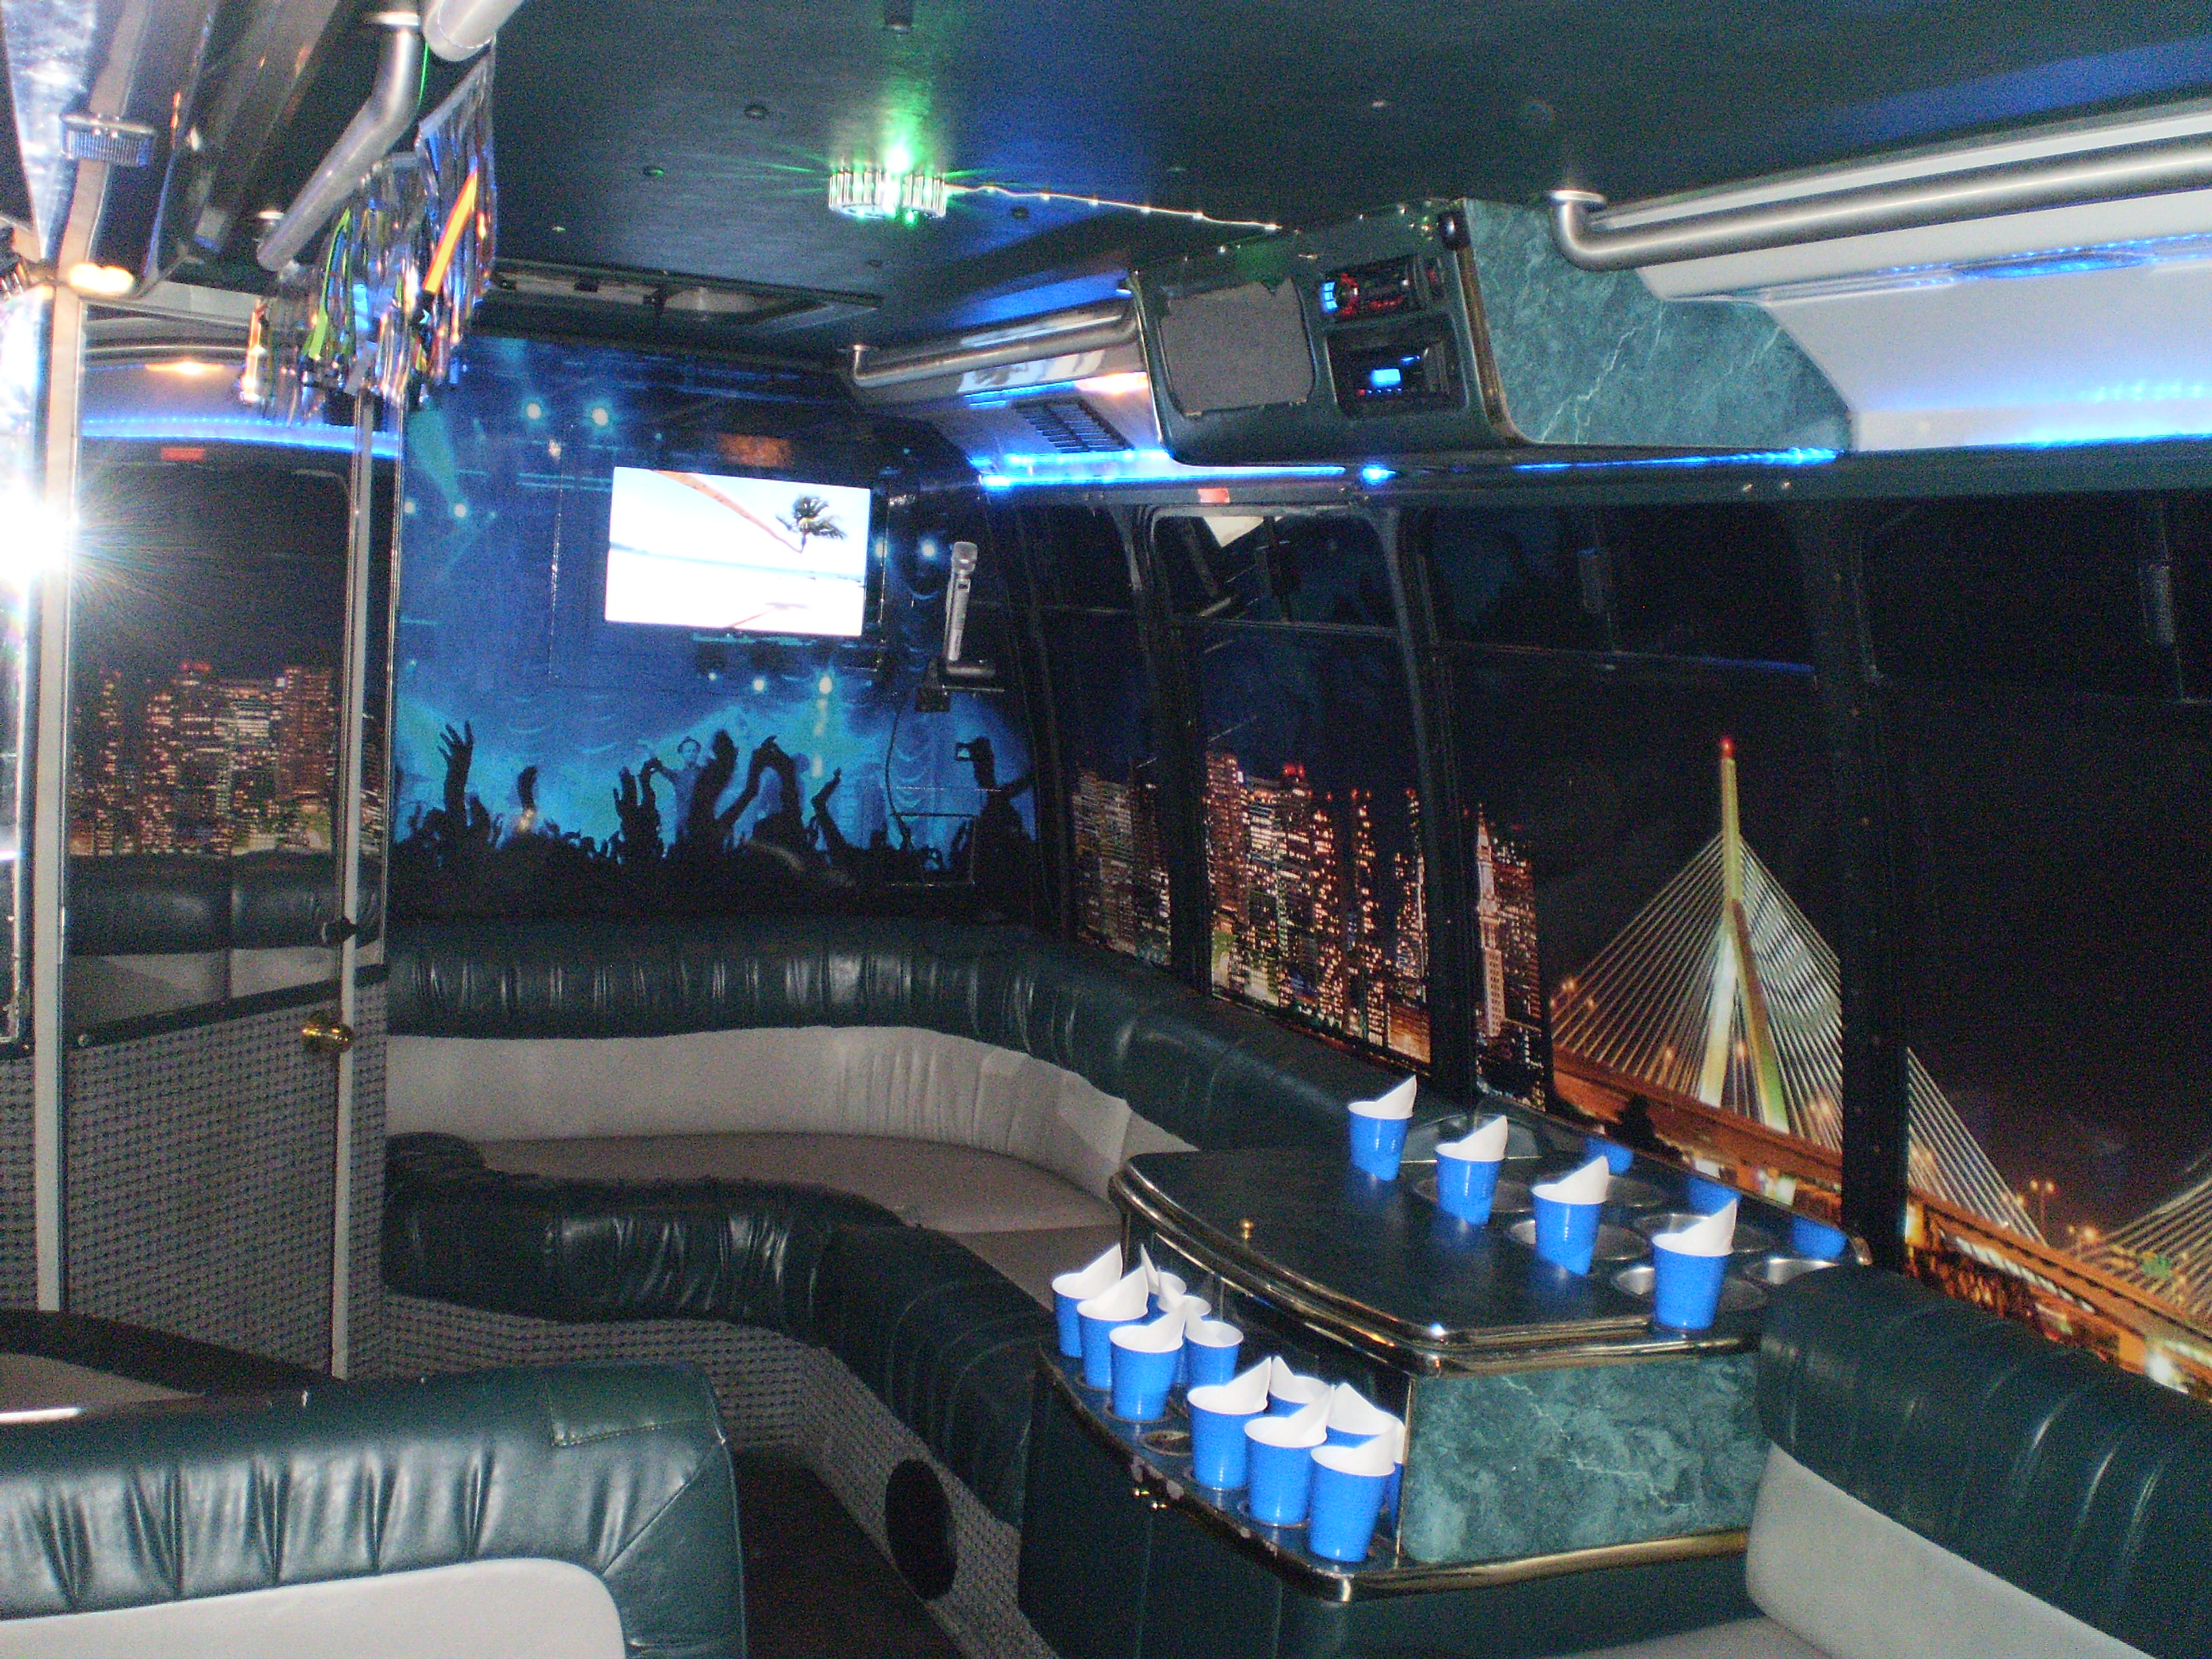 Passenger Party Bus - Inside View at Night